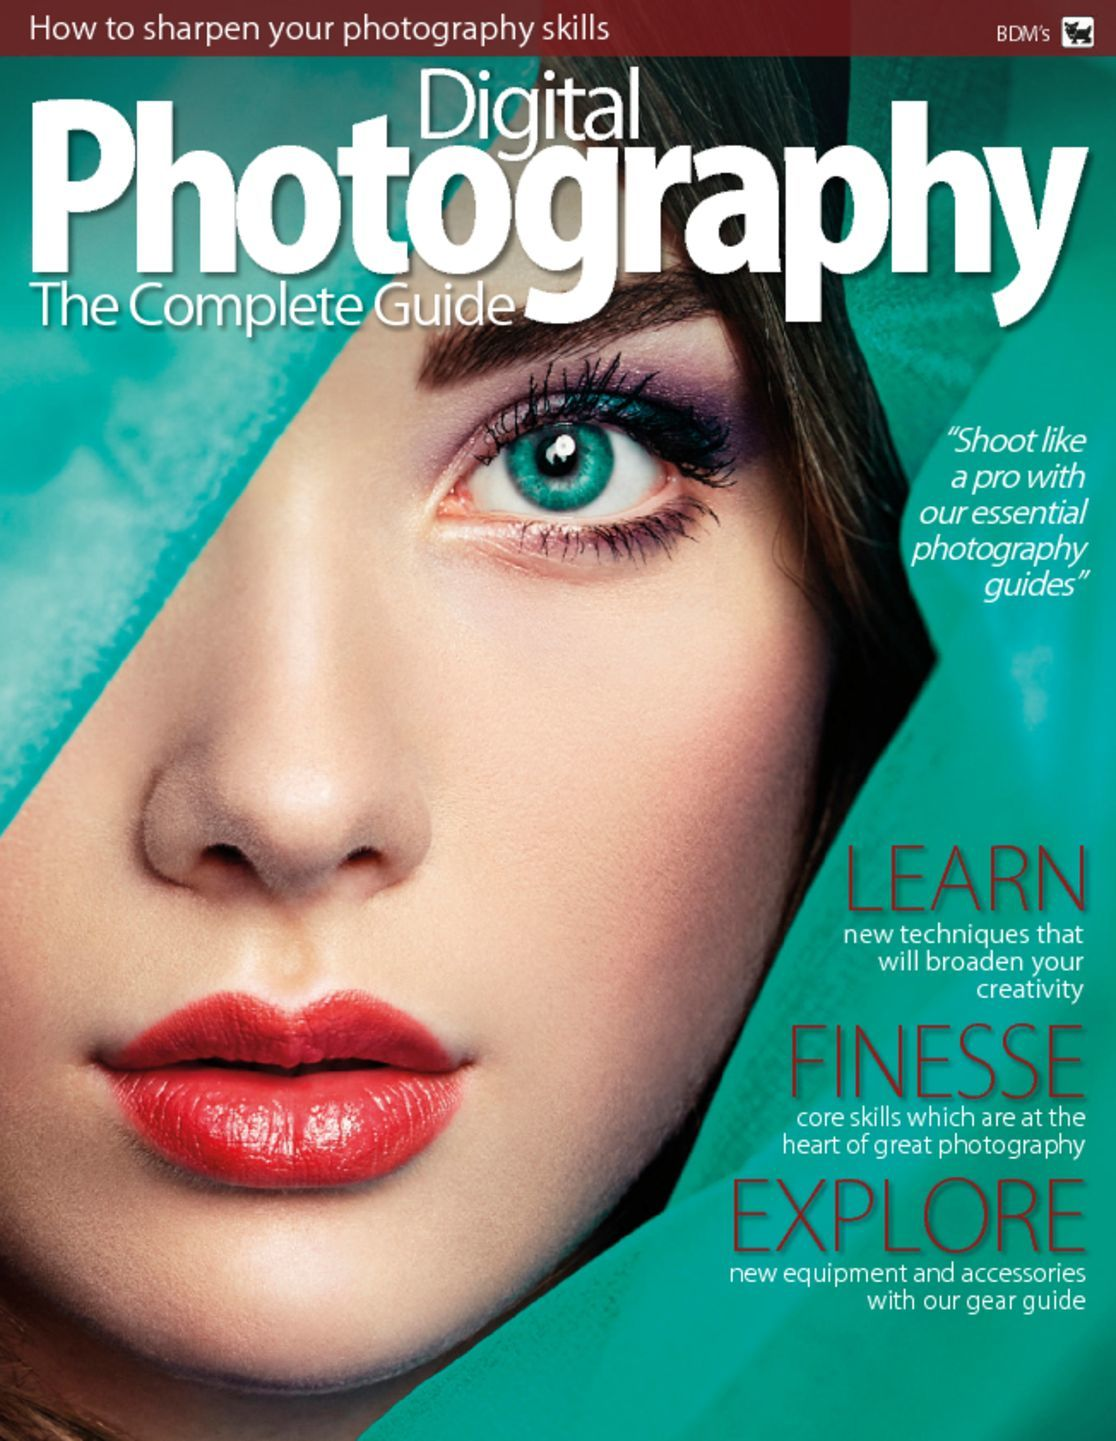 Digital Photography The Complete Guide Digital